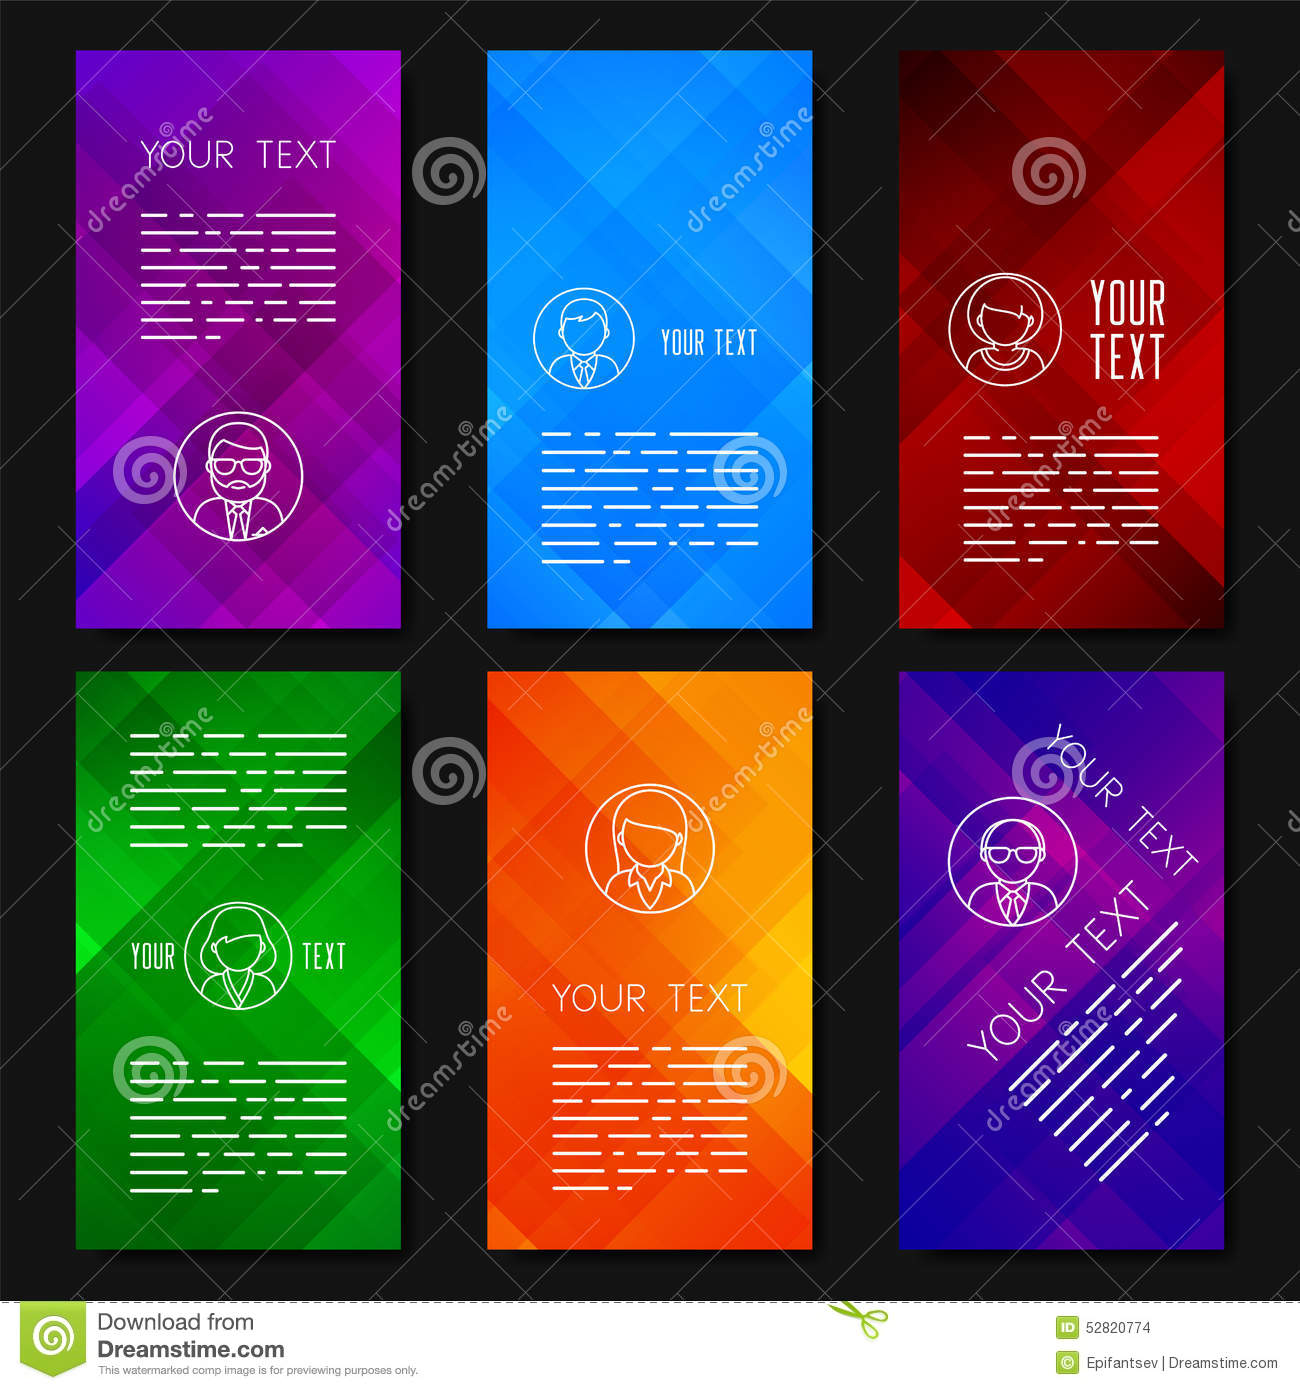 Abstract Vector Template Design With Colorful Geometric